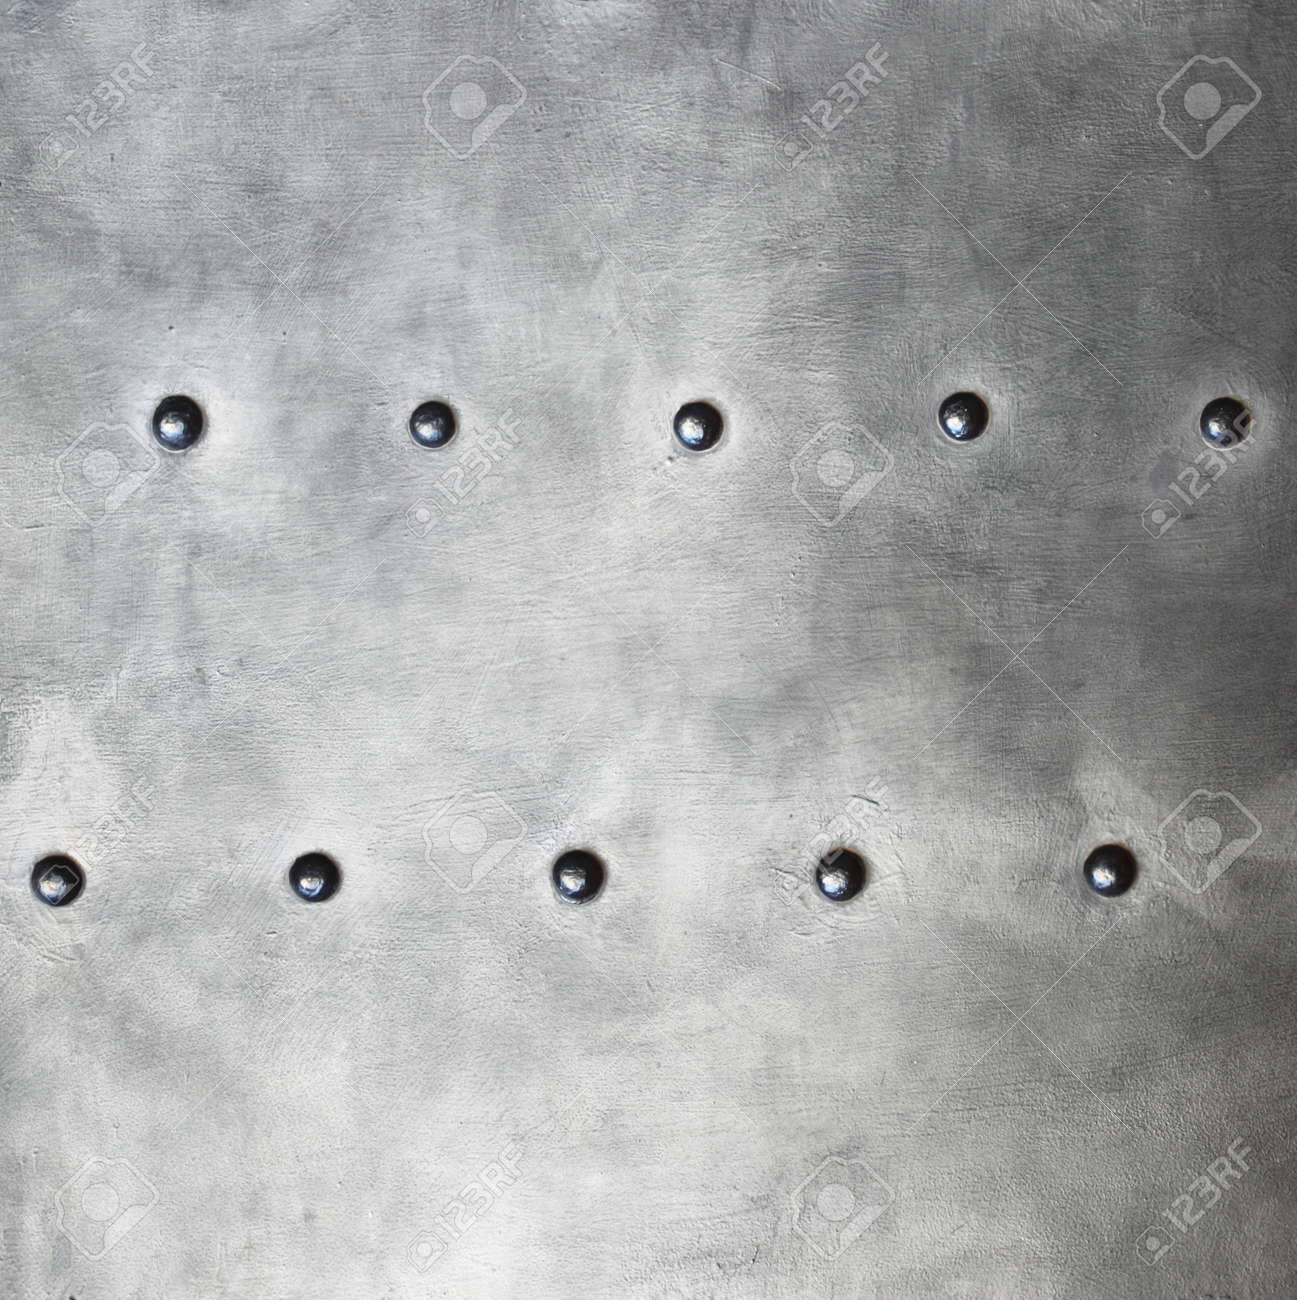 Black grunge metal plate or armour texture with rivets as background Stock Photo - 19282530